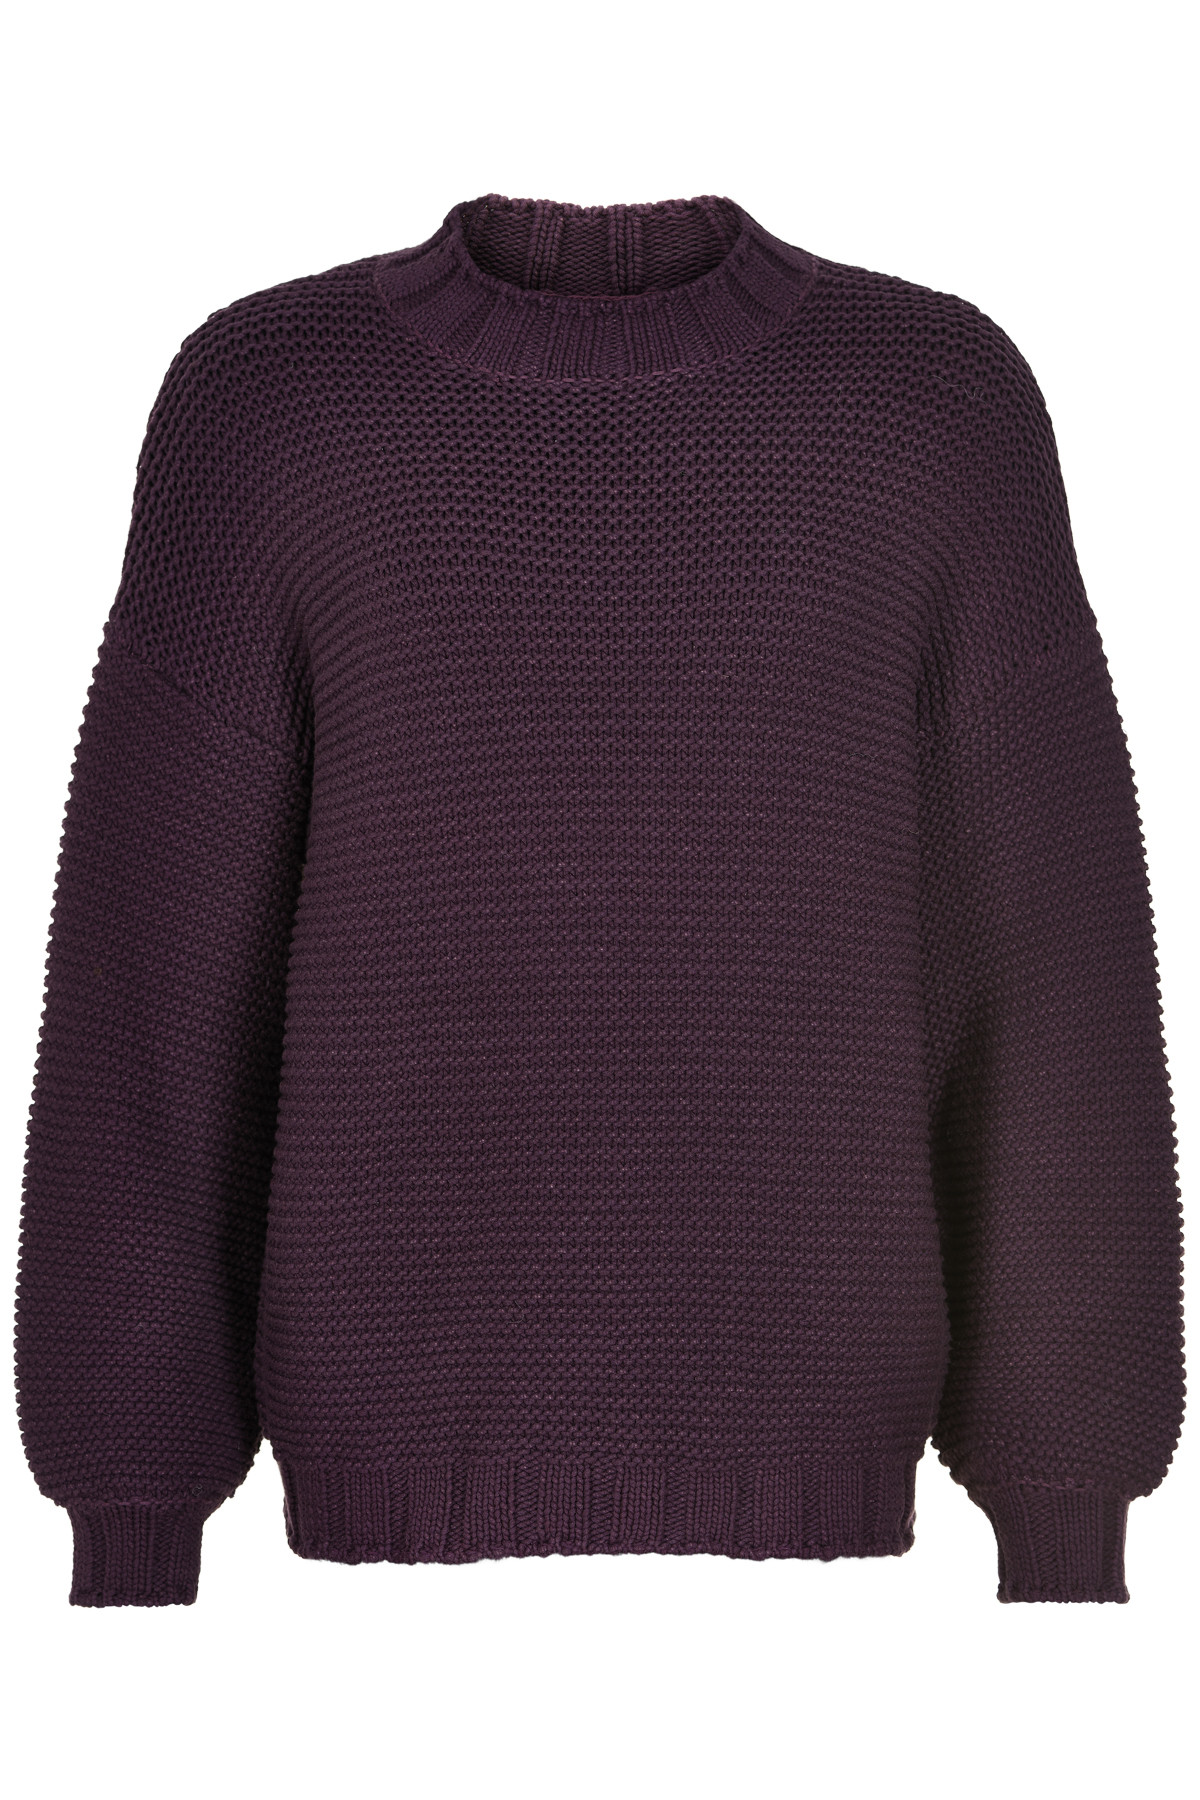 Image of   AND LESS NEW RAIMONDO PULLOVER 5419208 P (Plum Perfect, XS)